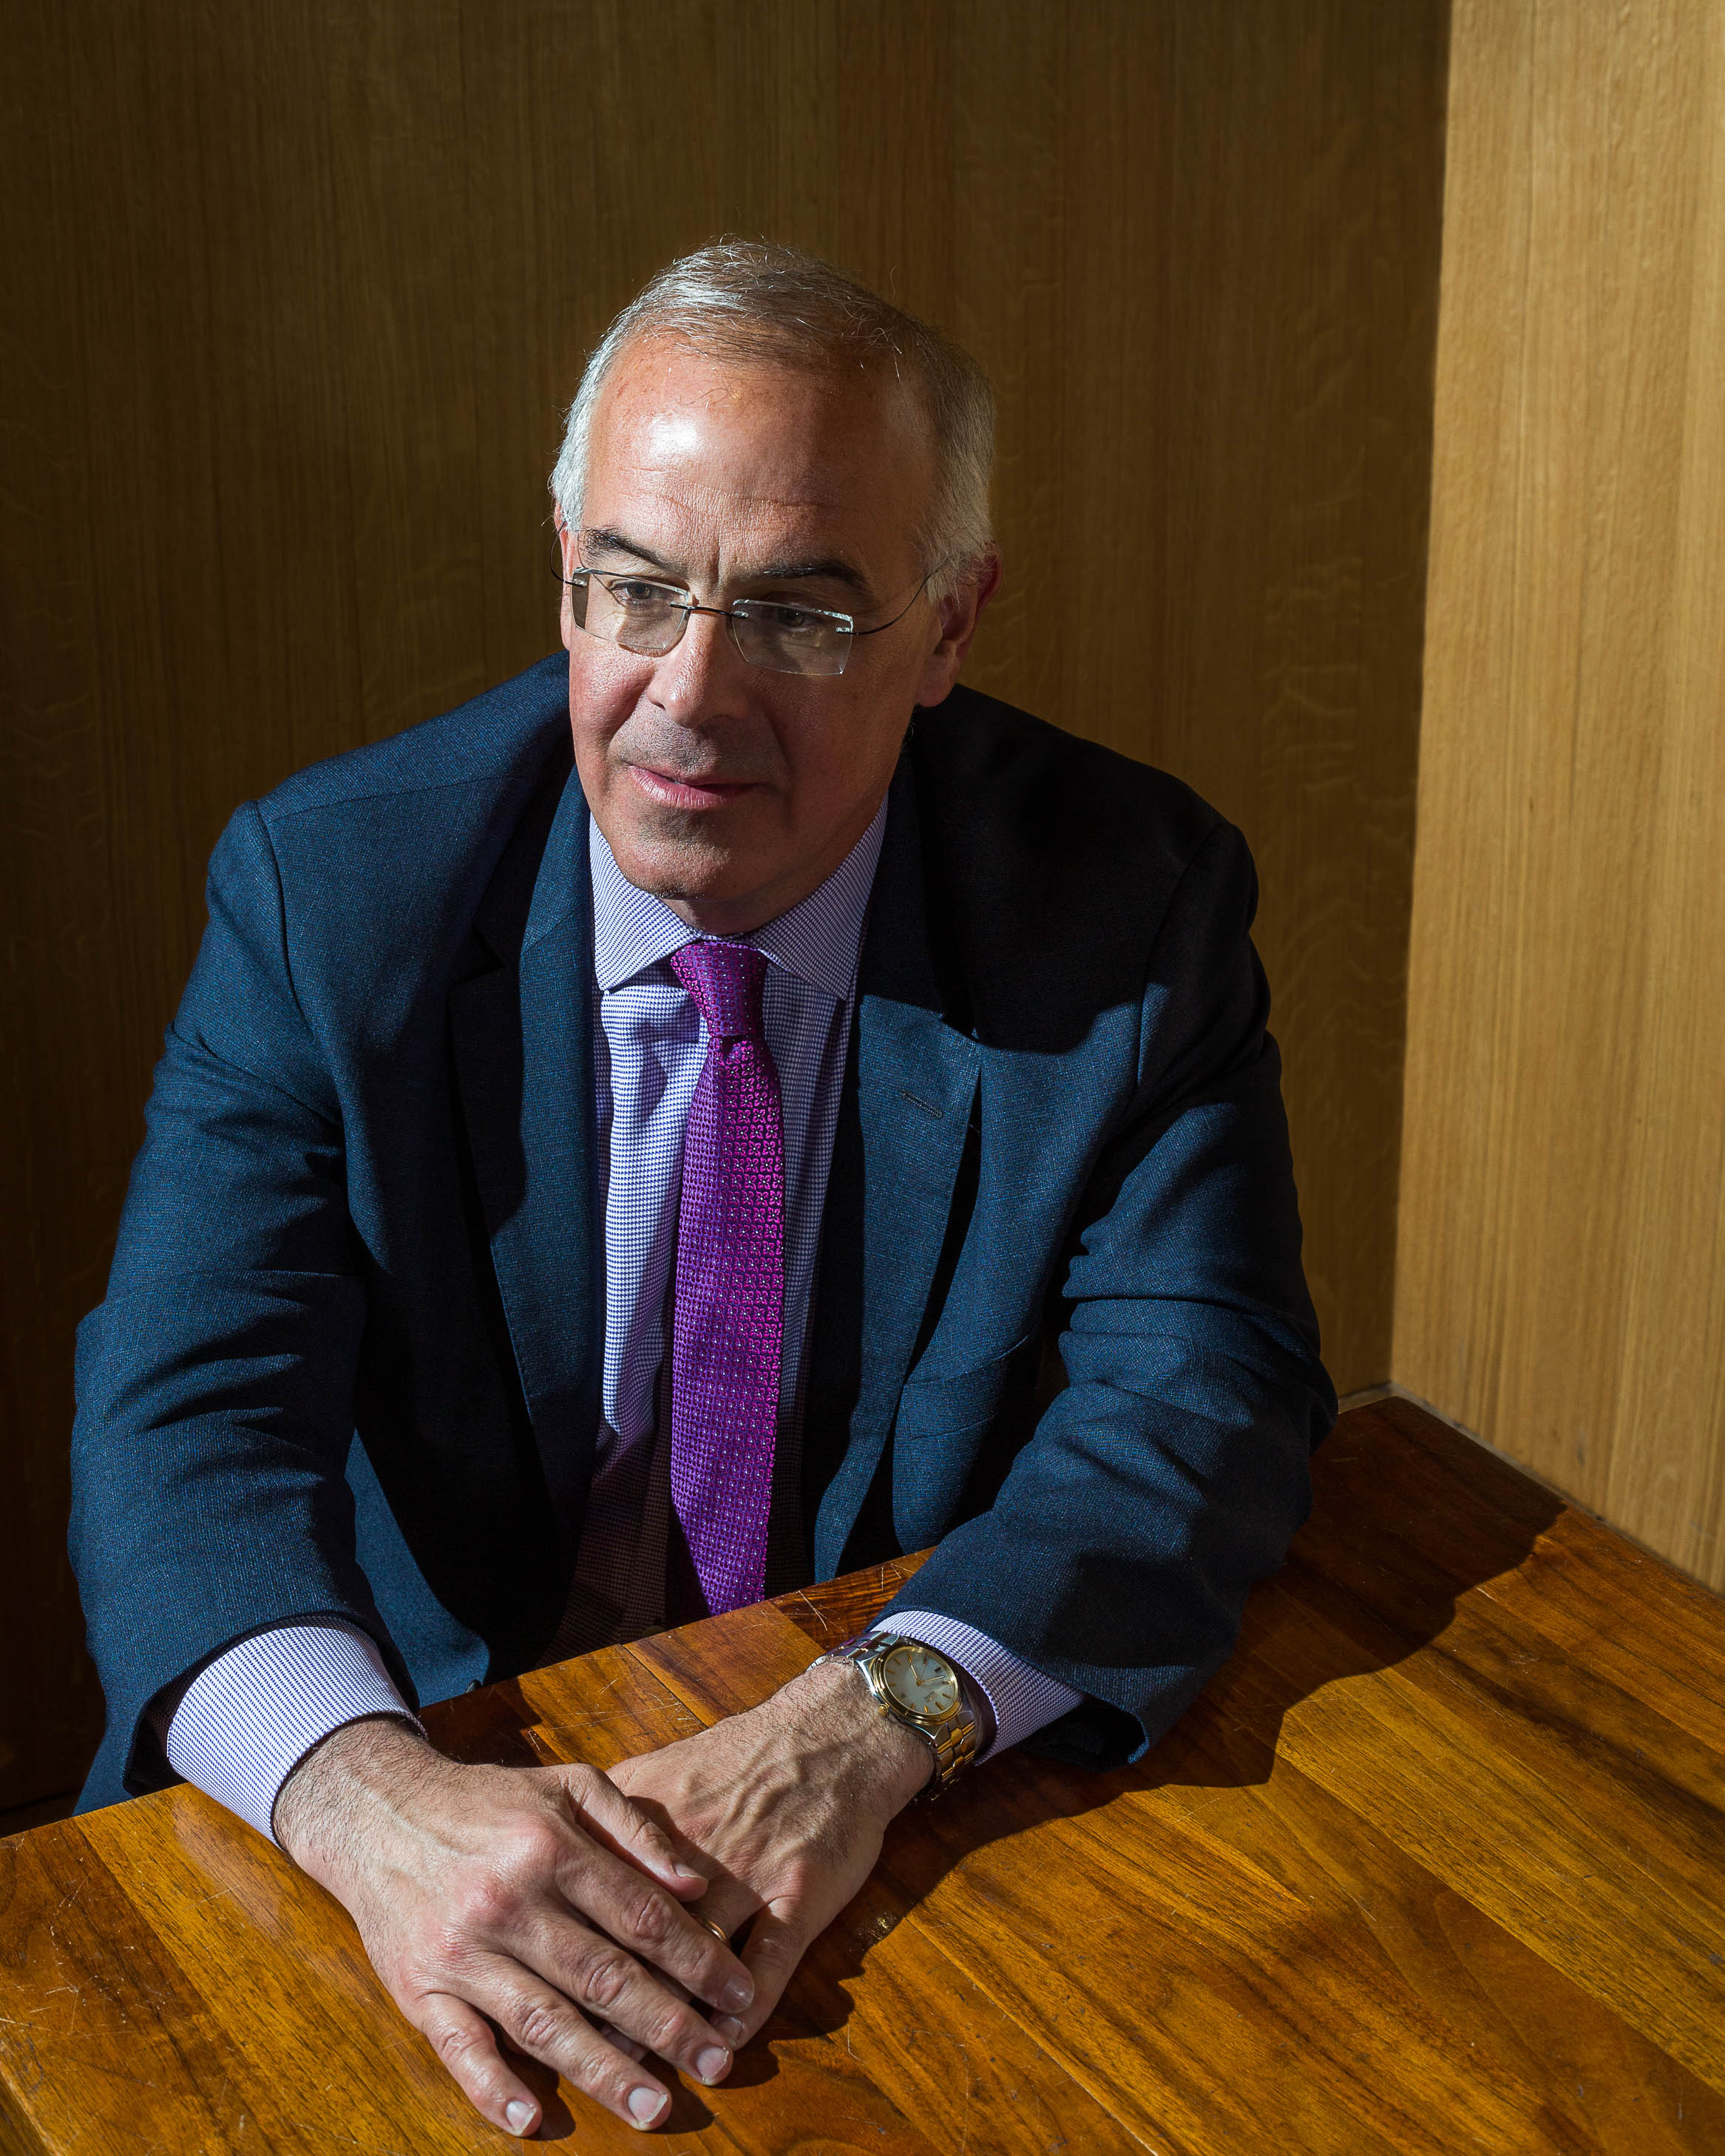 68 Minutes With David Brooks - The conservative columnist takes a look inside his soul. But what does he see?By Lisa MillerNew York Magazine